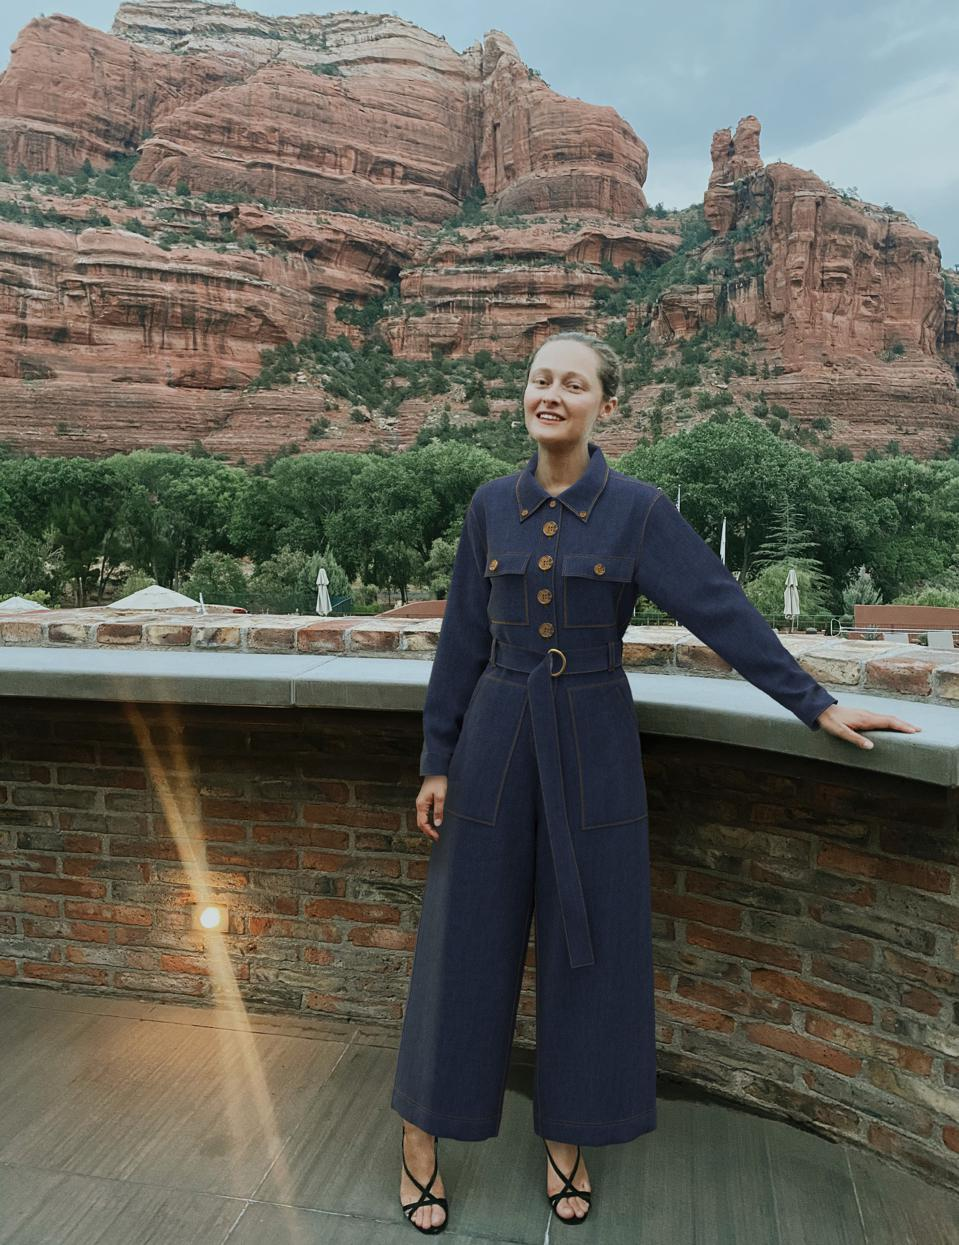 Daria Shapovalova wearing a virtual fashion outfit by The Fabricant in front of mountains